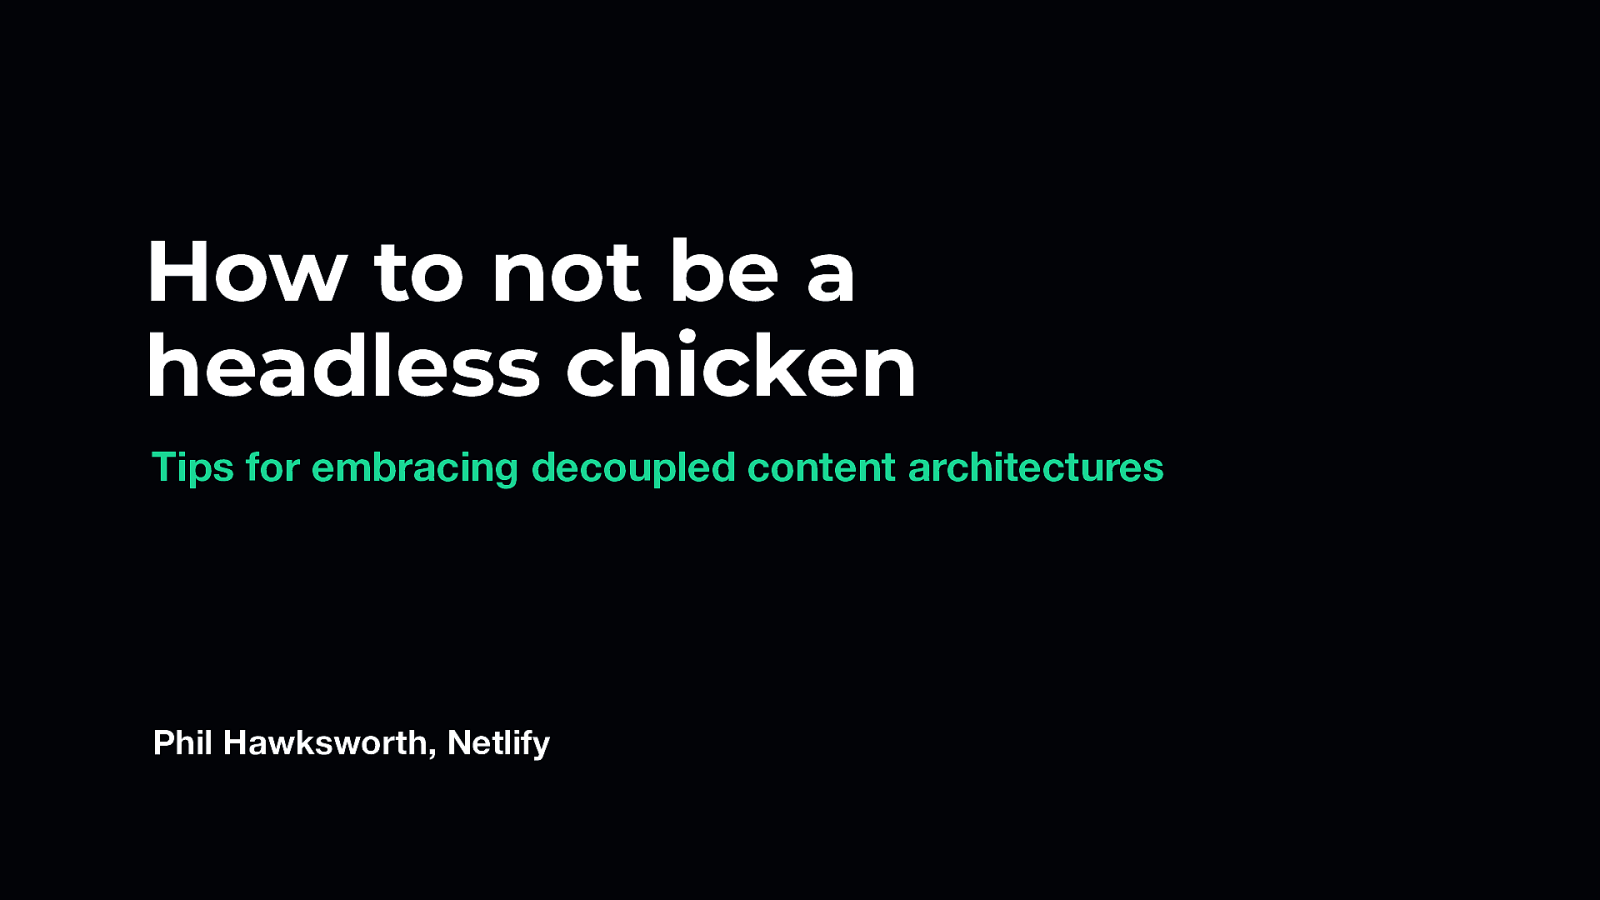 How not to be a headless chicken by Phil Hawksworth